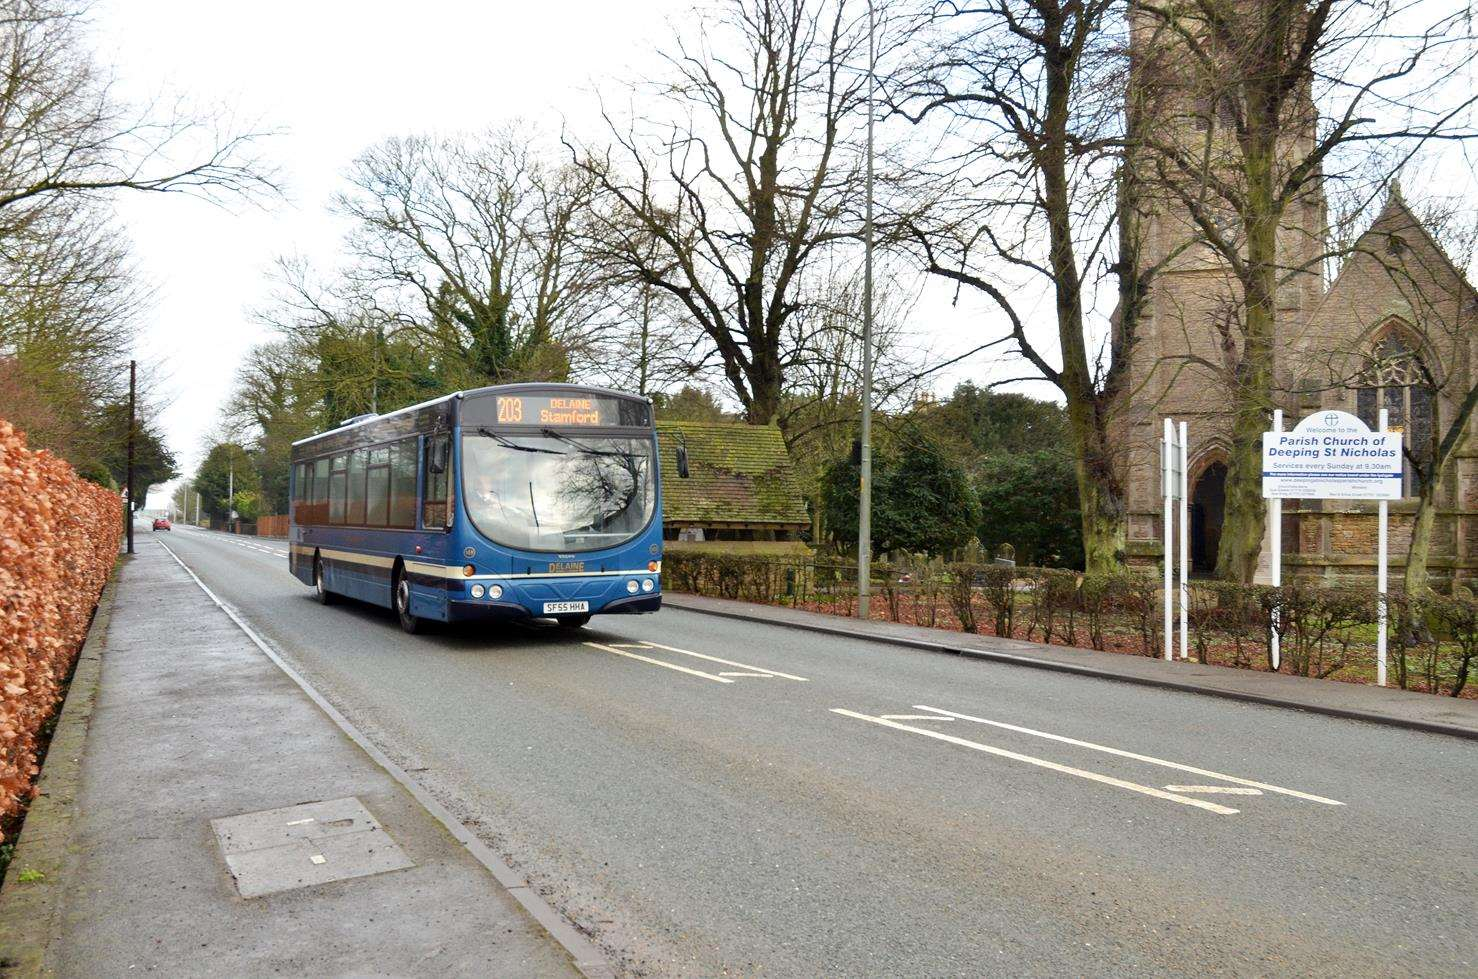 The new 203 Spalding to Stamford bus service passes by Deeping St Nicholas Parish Church. Photo (TIM WILSON): SG-250119-007TW.